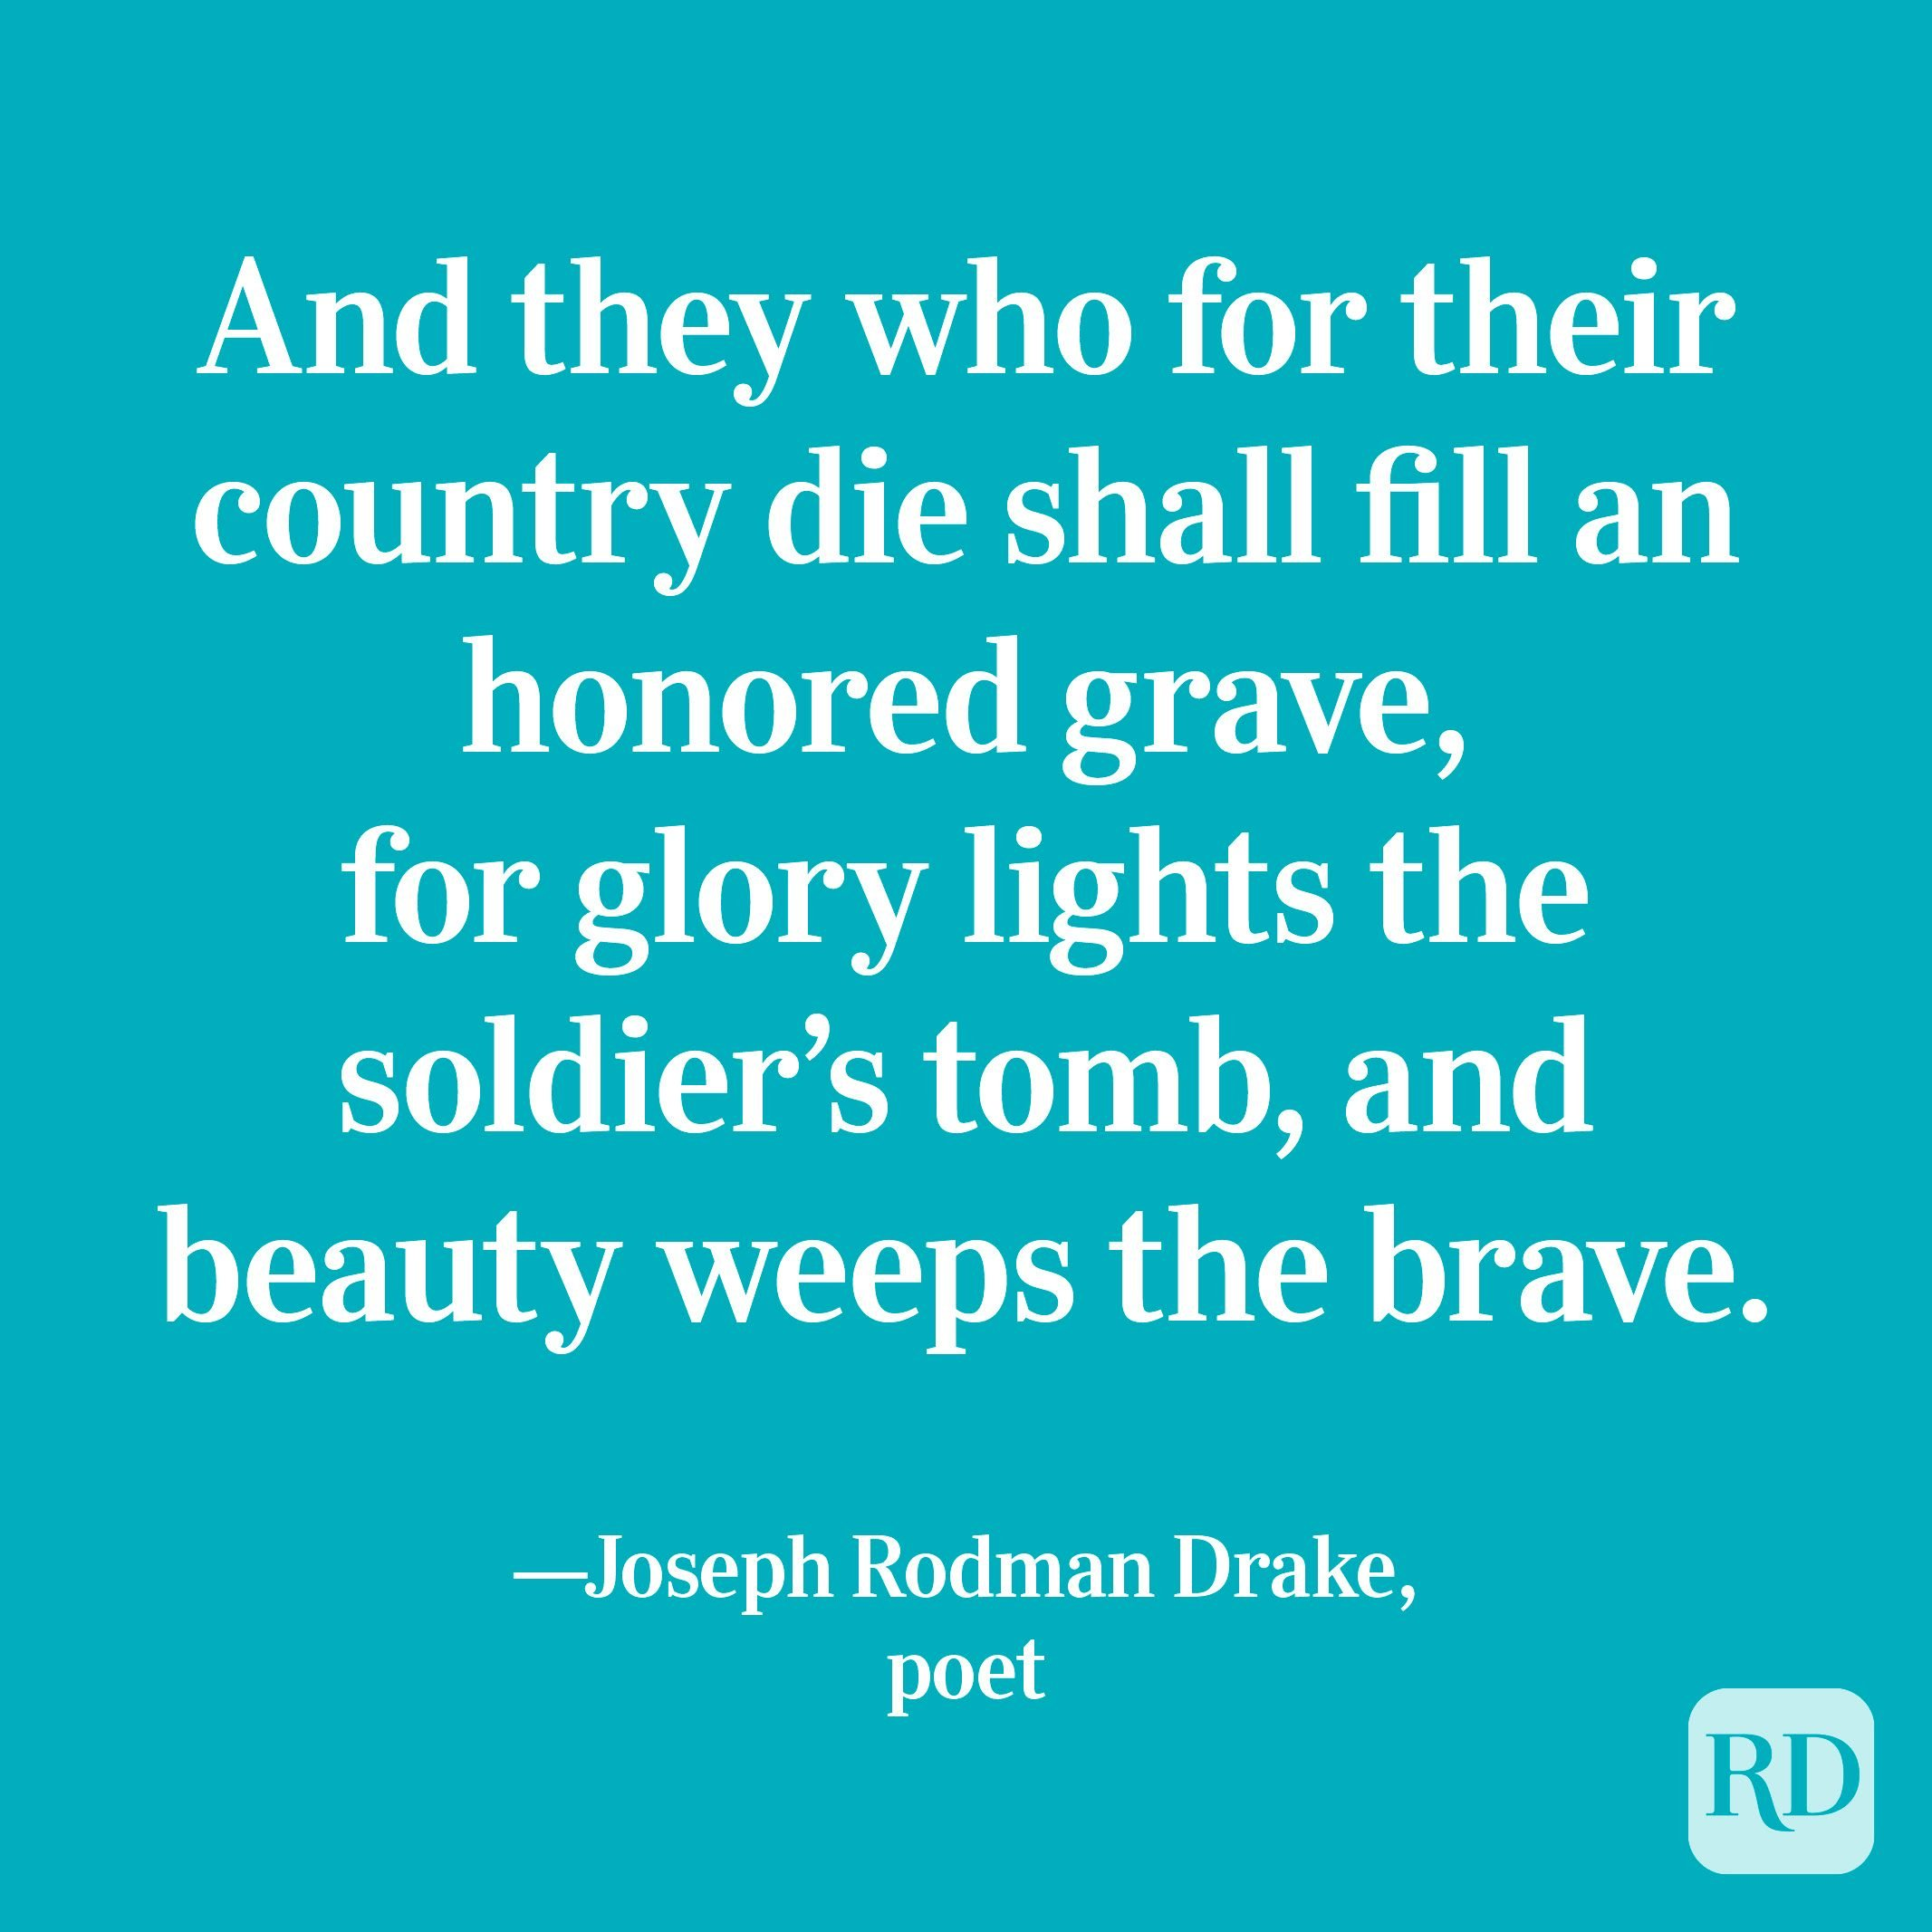 """""""And they who for their country die shall fill an honored grave, for glory lights the soldier's tomb, and beauty weeps the brave."""" —Joseph Rodman Drake, poet"""